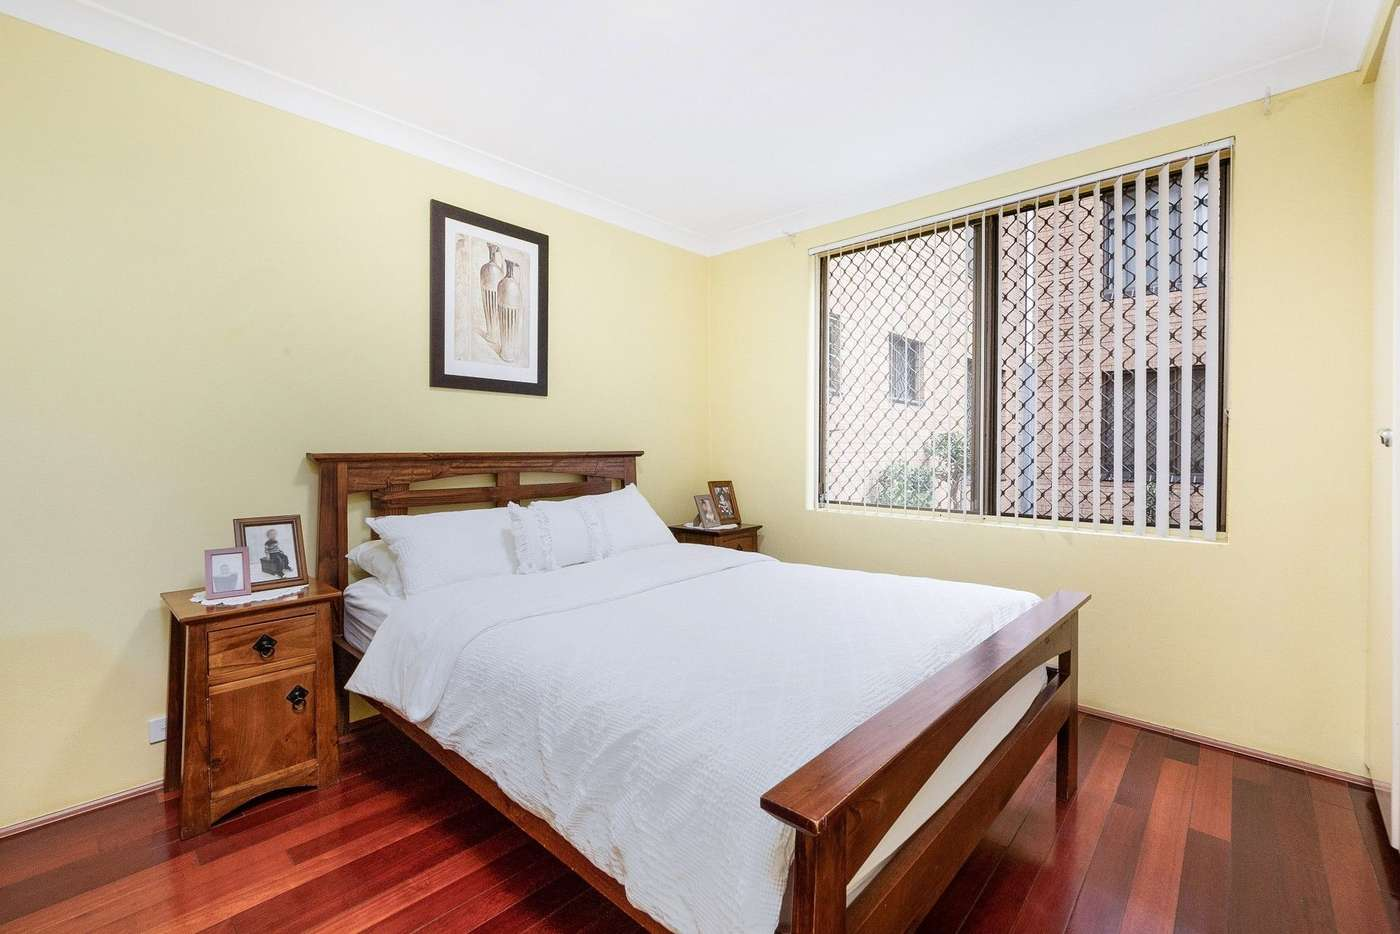 Sixth view of Homely apartment listing, 19/33 Sir Joseph Banks Street, Bankstown NSW 2200